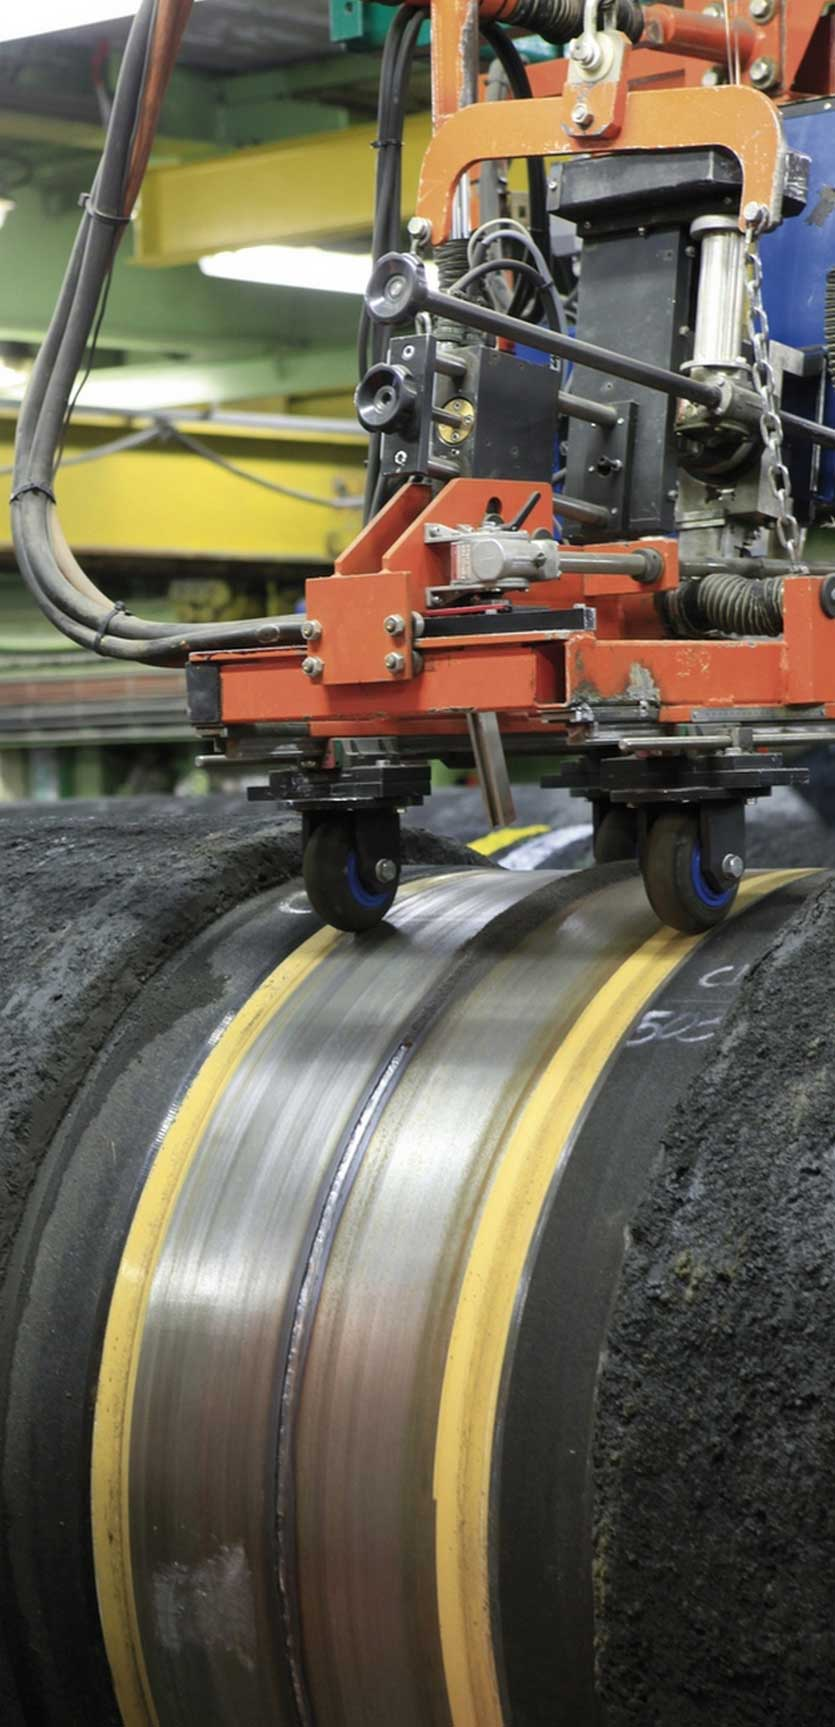 Inspection of the welded pipes with automatic ultrasonic equipment